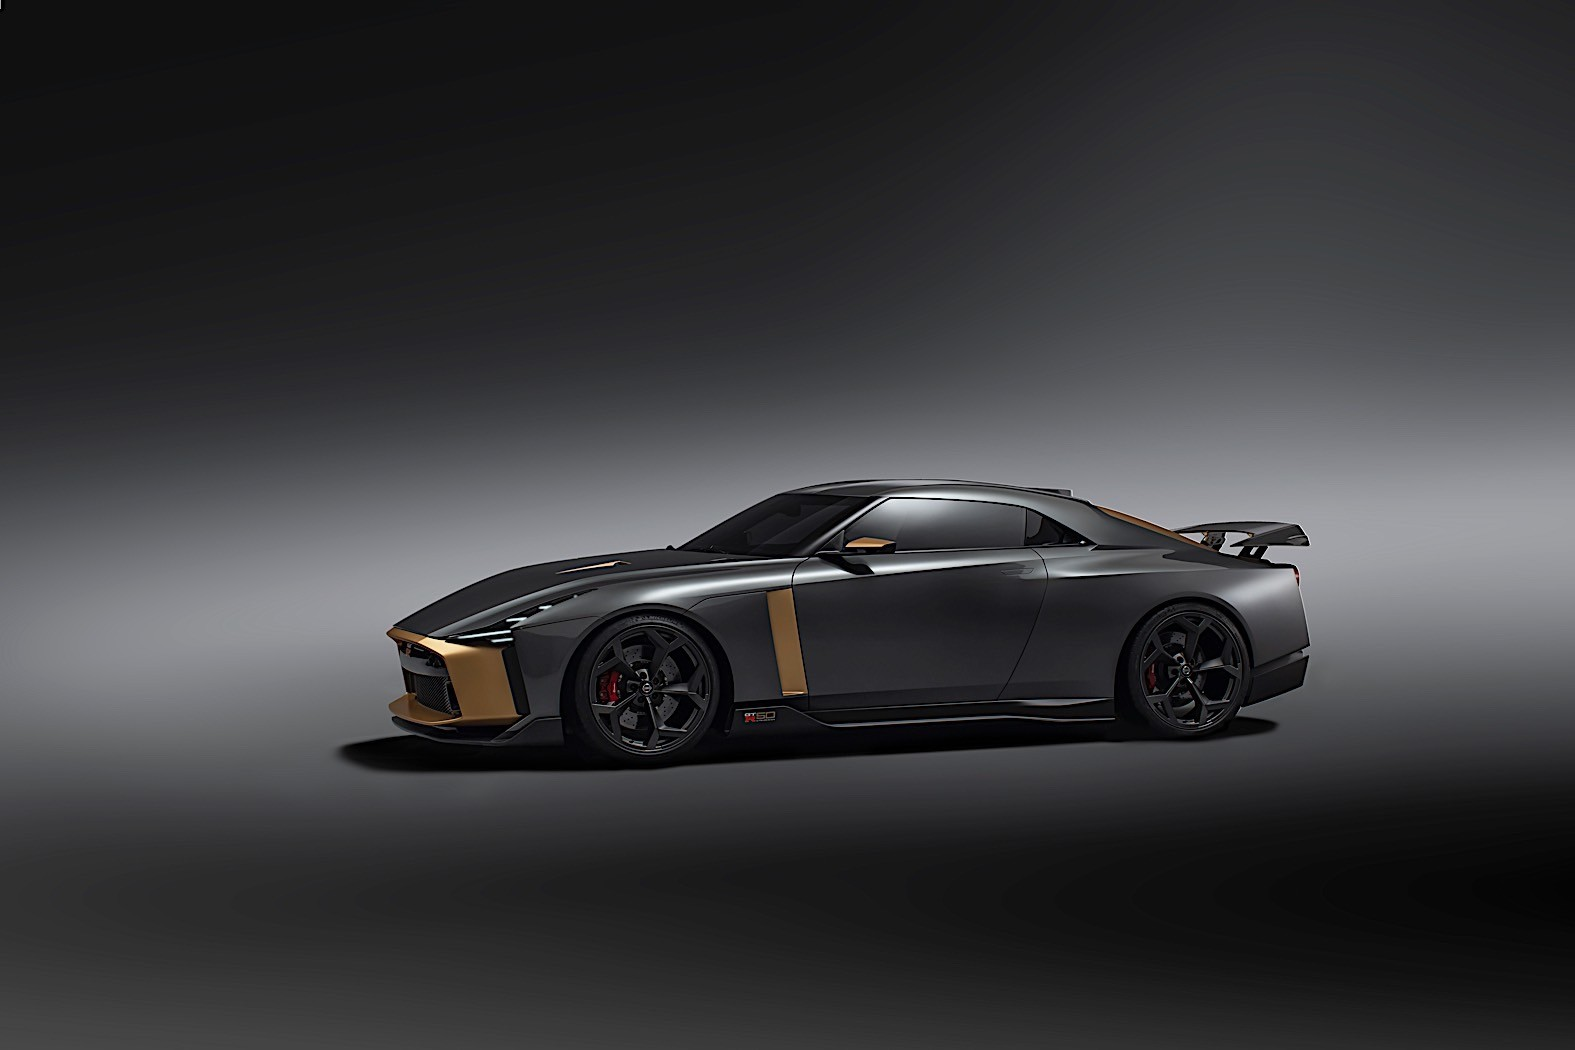 2018 Nissan Gt R >> Nissan GT-R50 Shines in Official Images - autoevolution